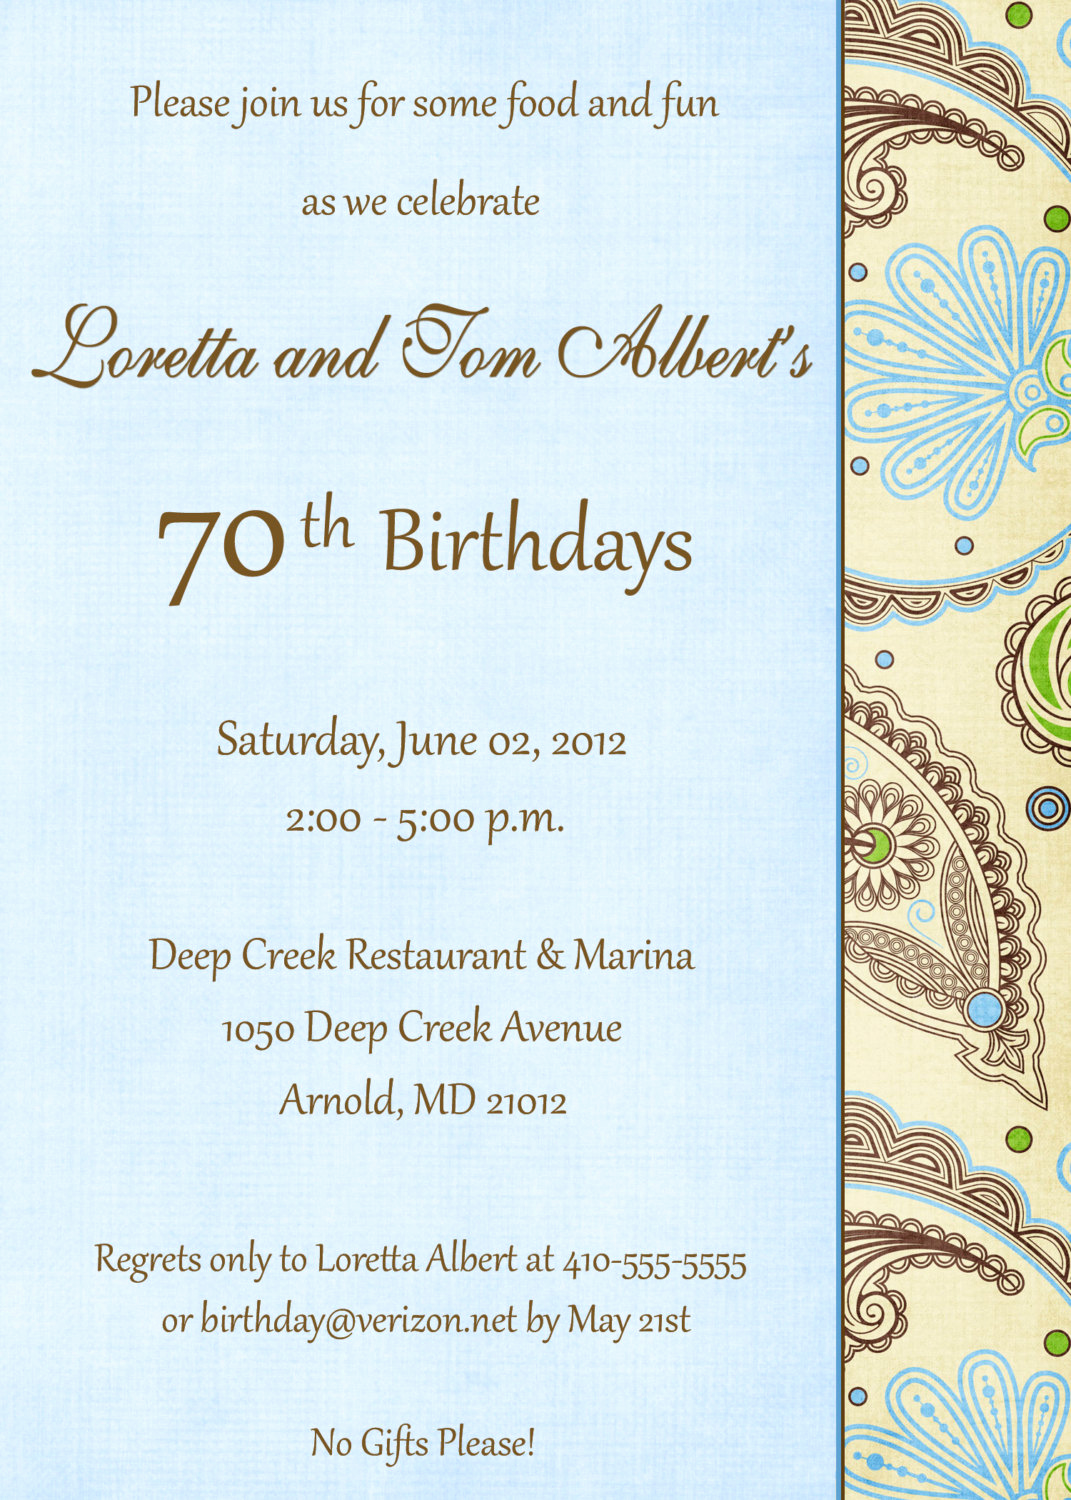 70th Birthday Party Invitation Wording Luxury 70th Birthday Invitation Wording — Birthday Invitation